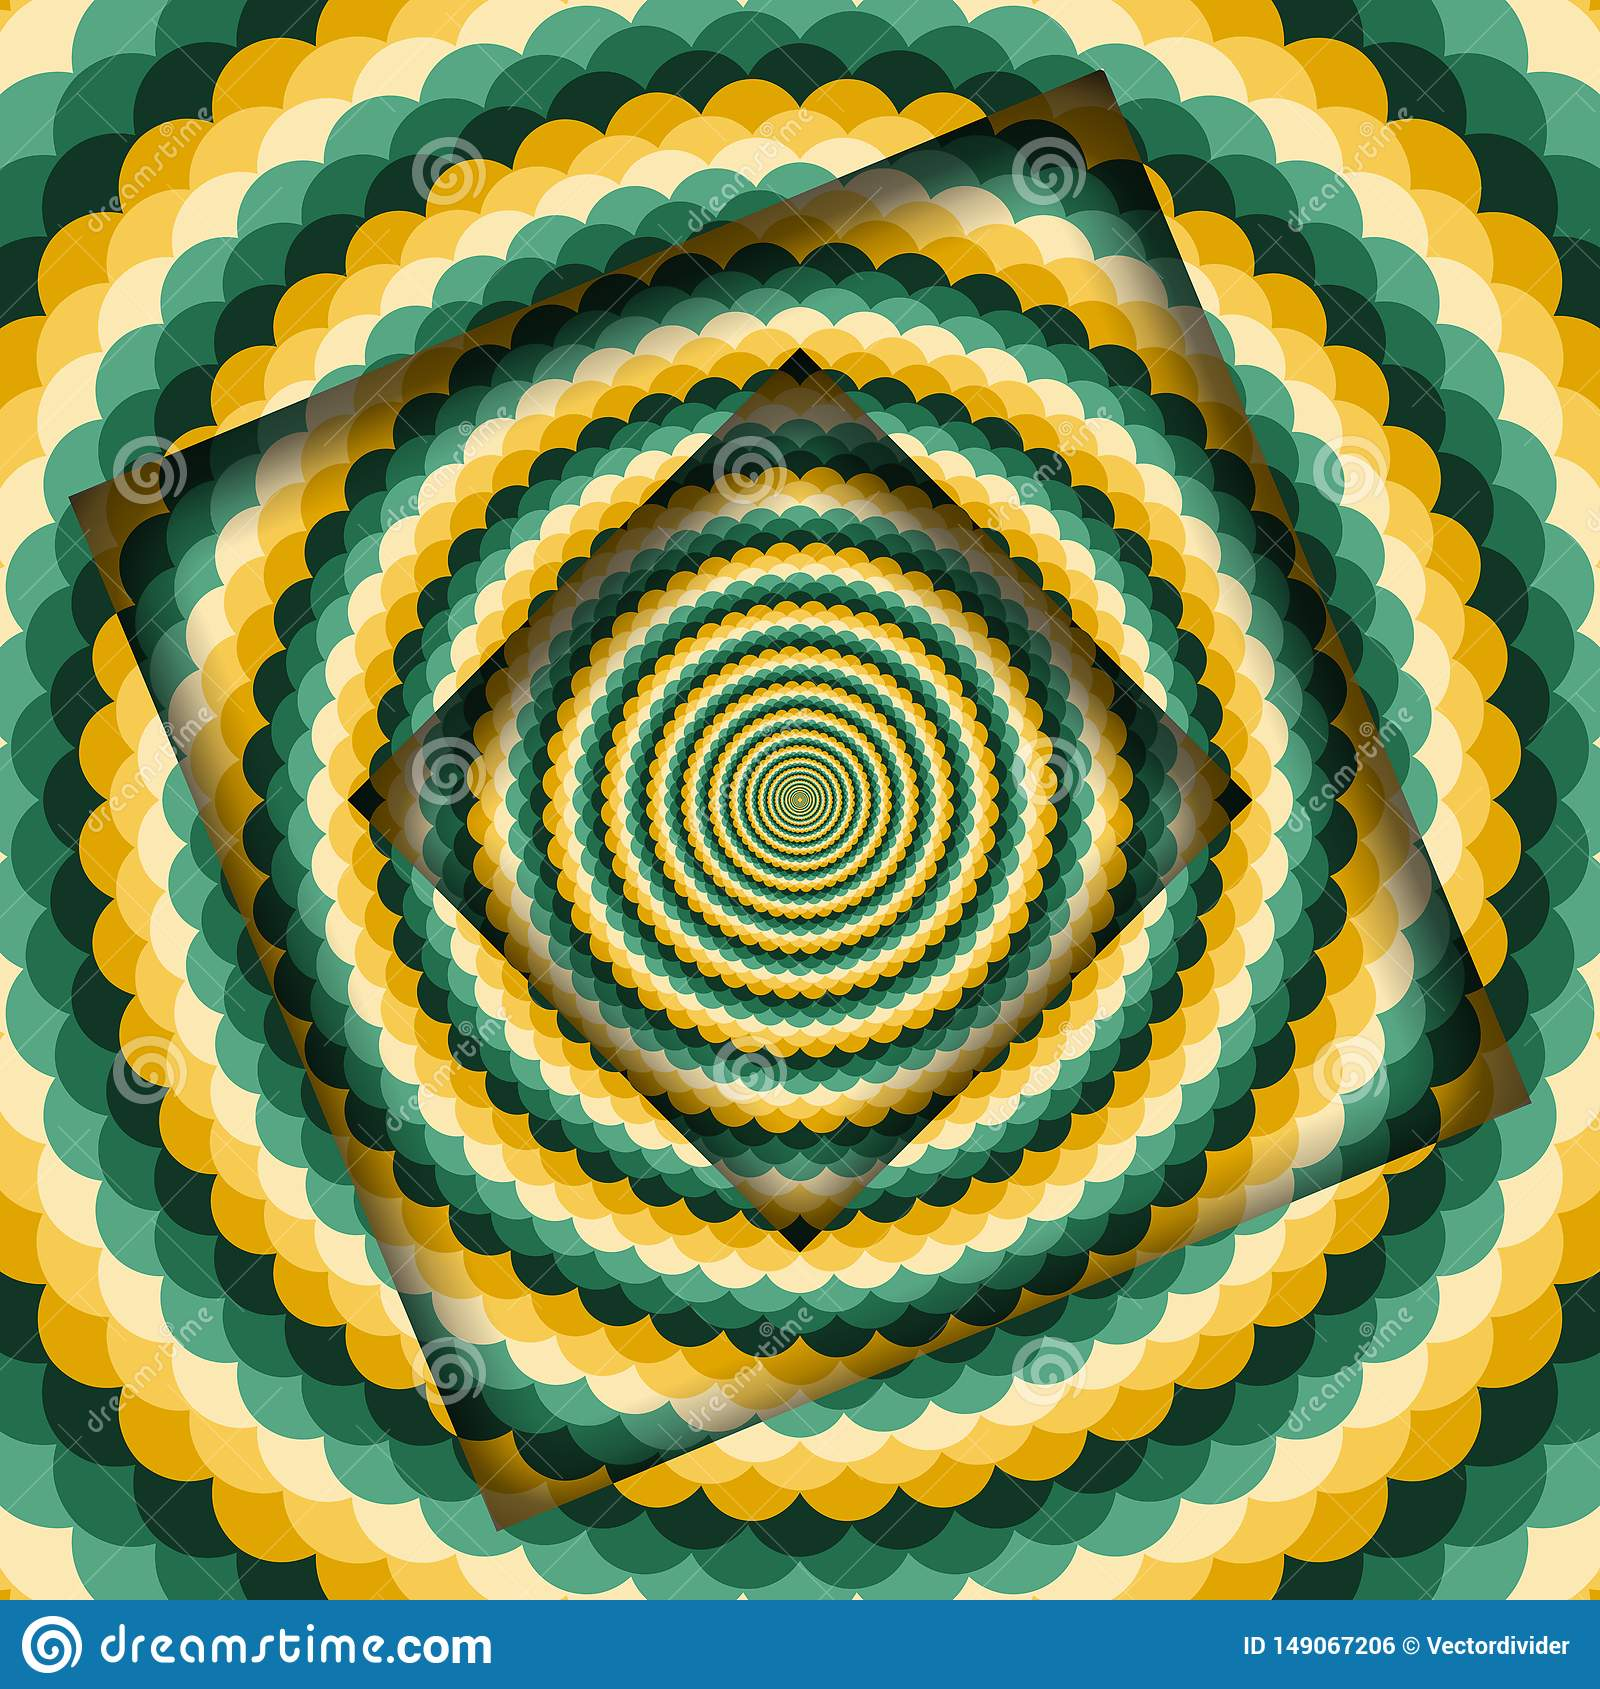 Abstract turned frames with a rotating green yellow wavy pattern. Optical illusion hypnotic background